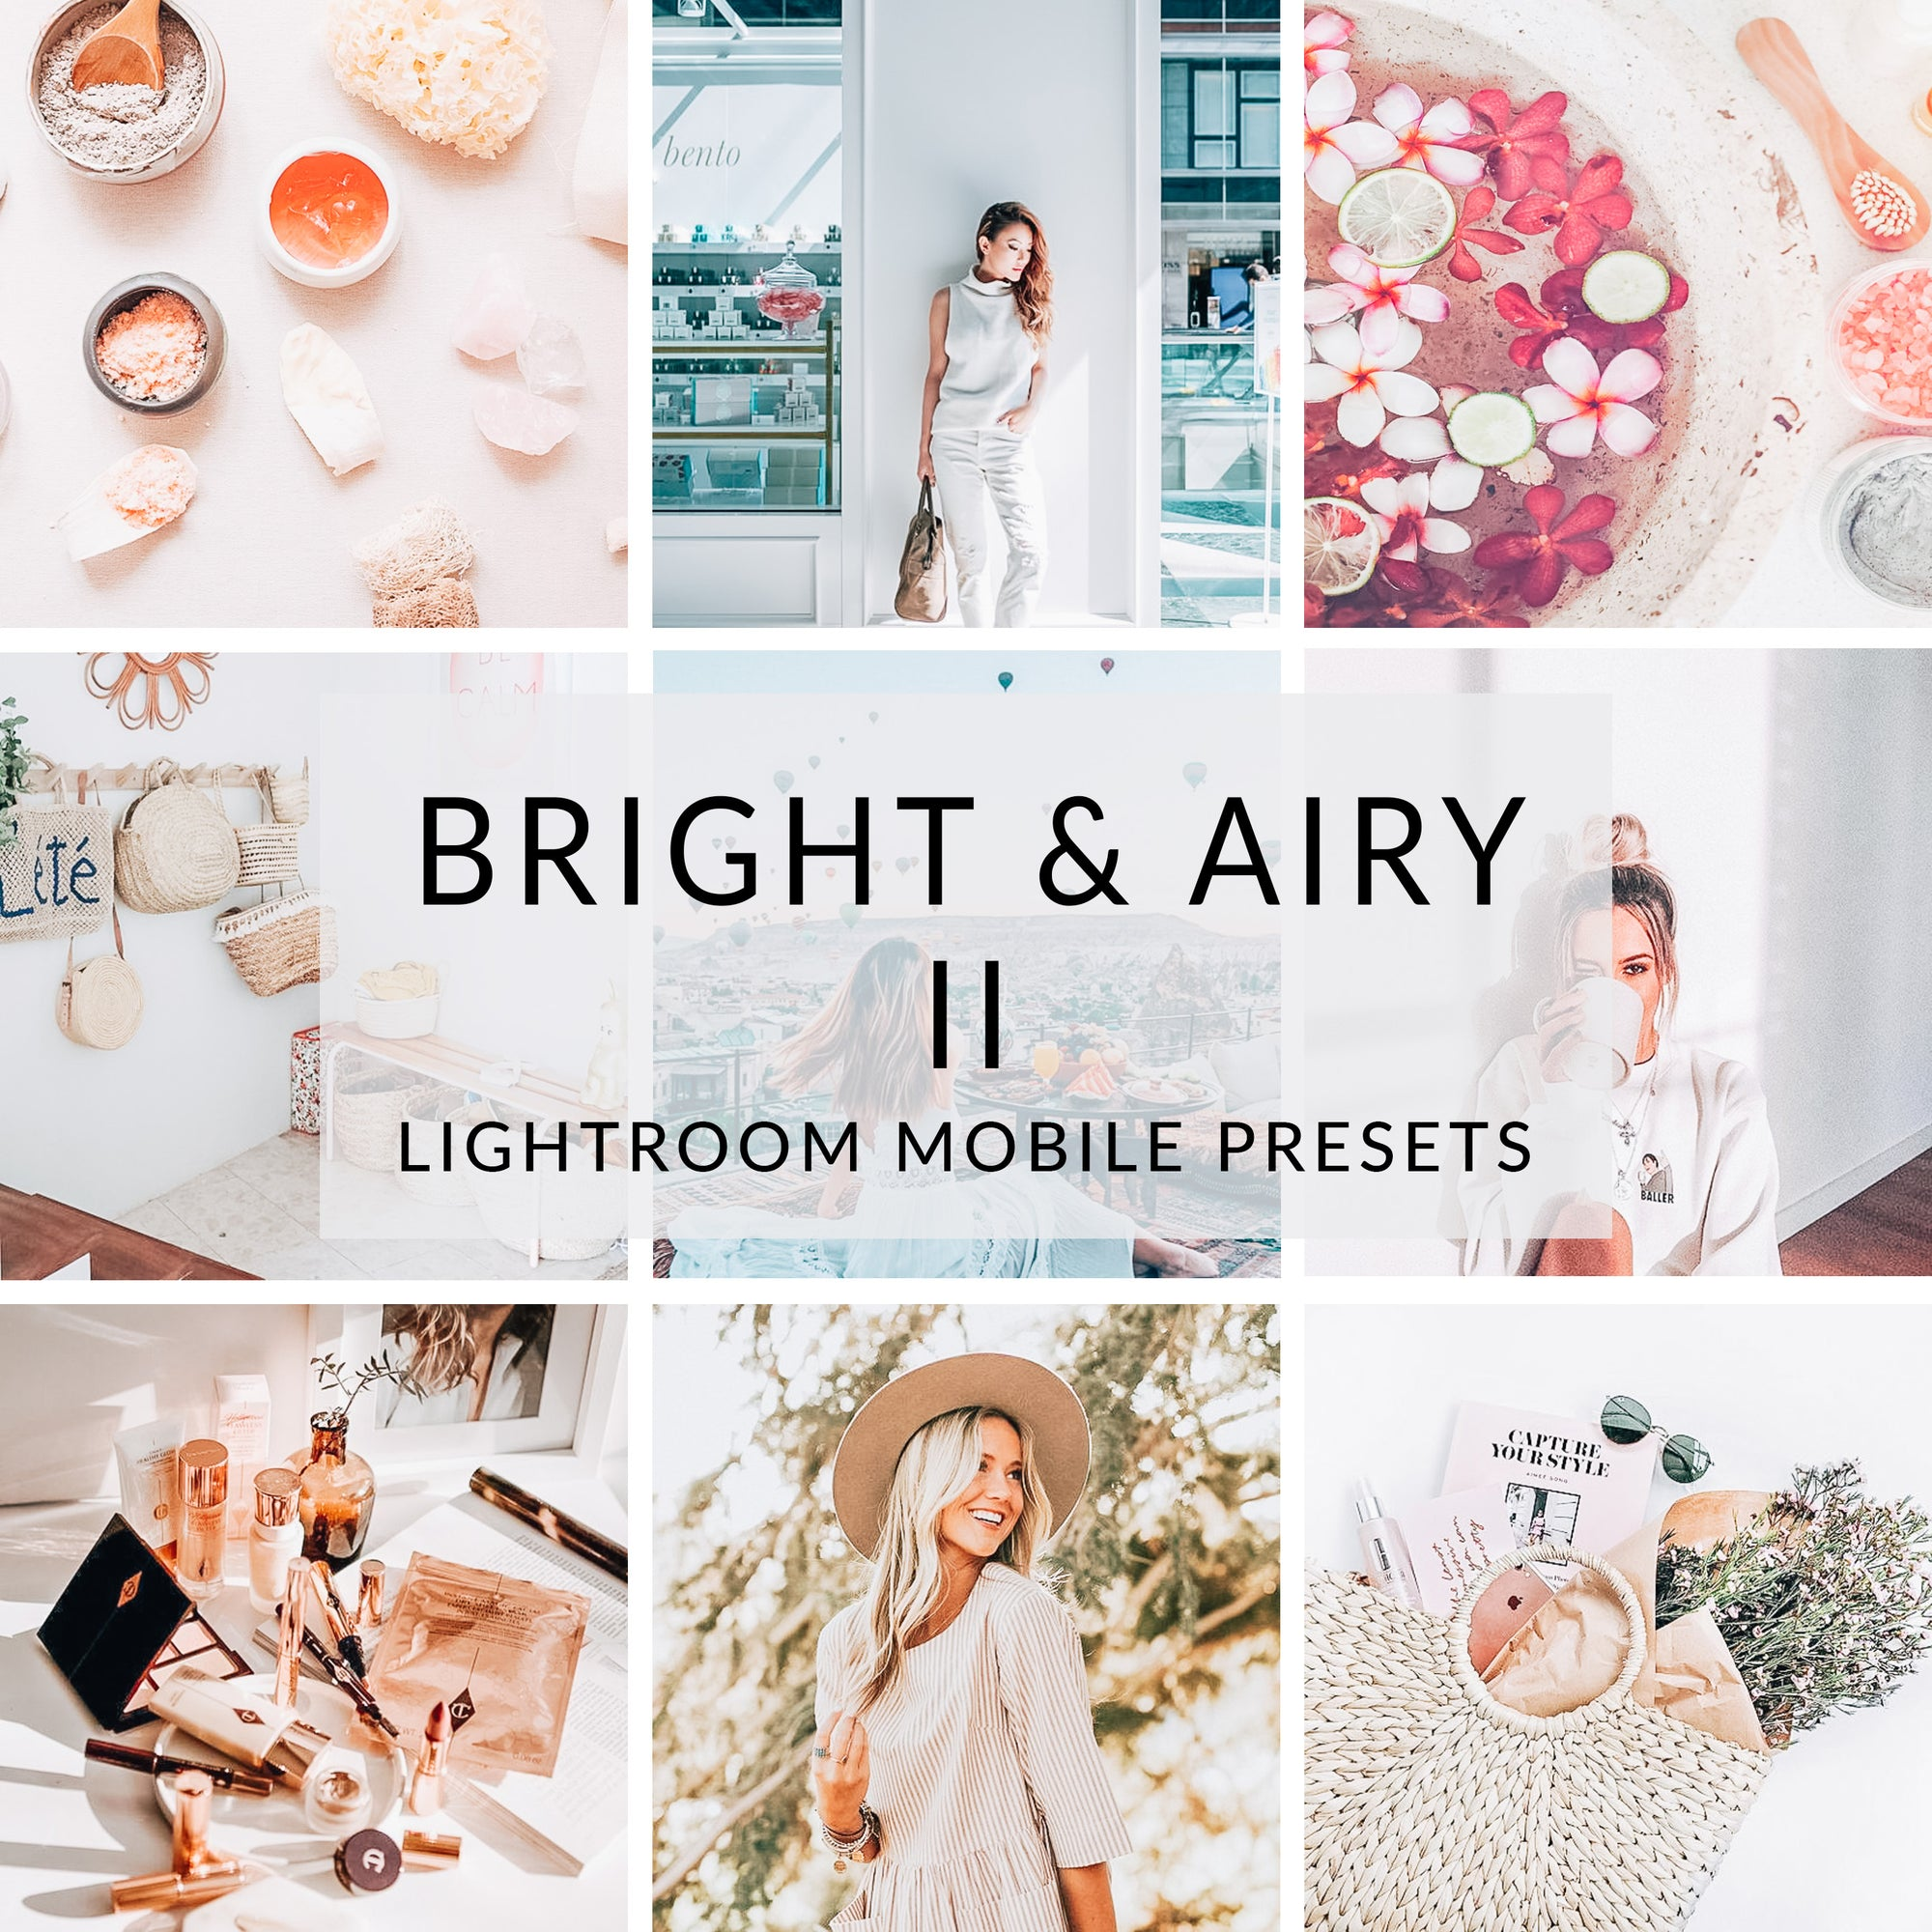 Bright & Airy II Lightroom Mobile Presets